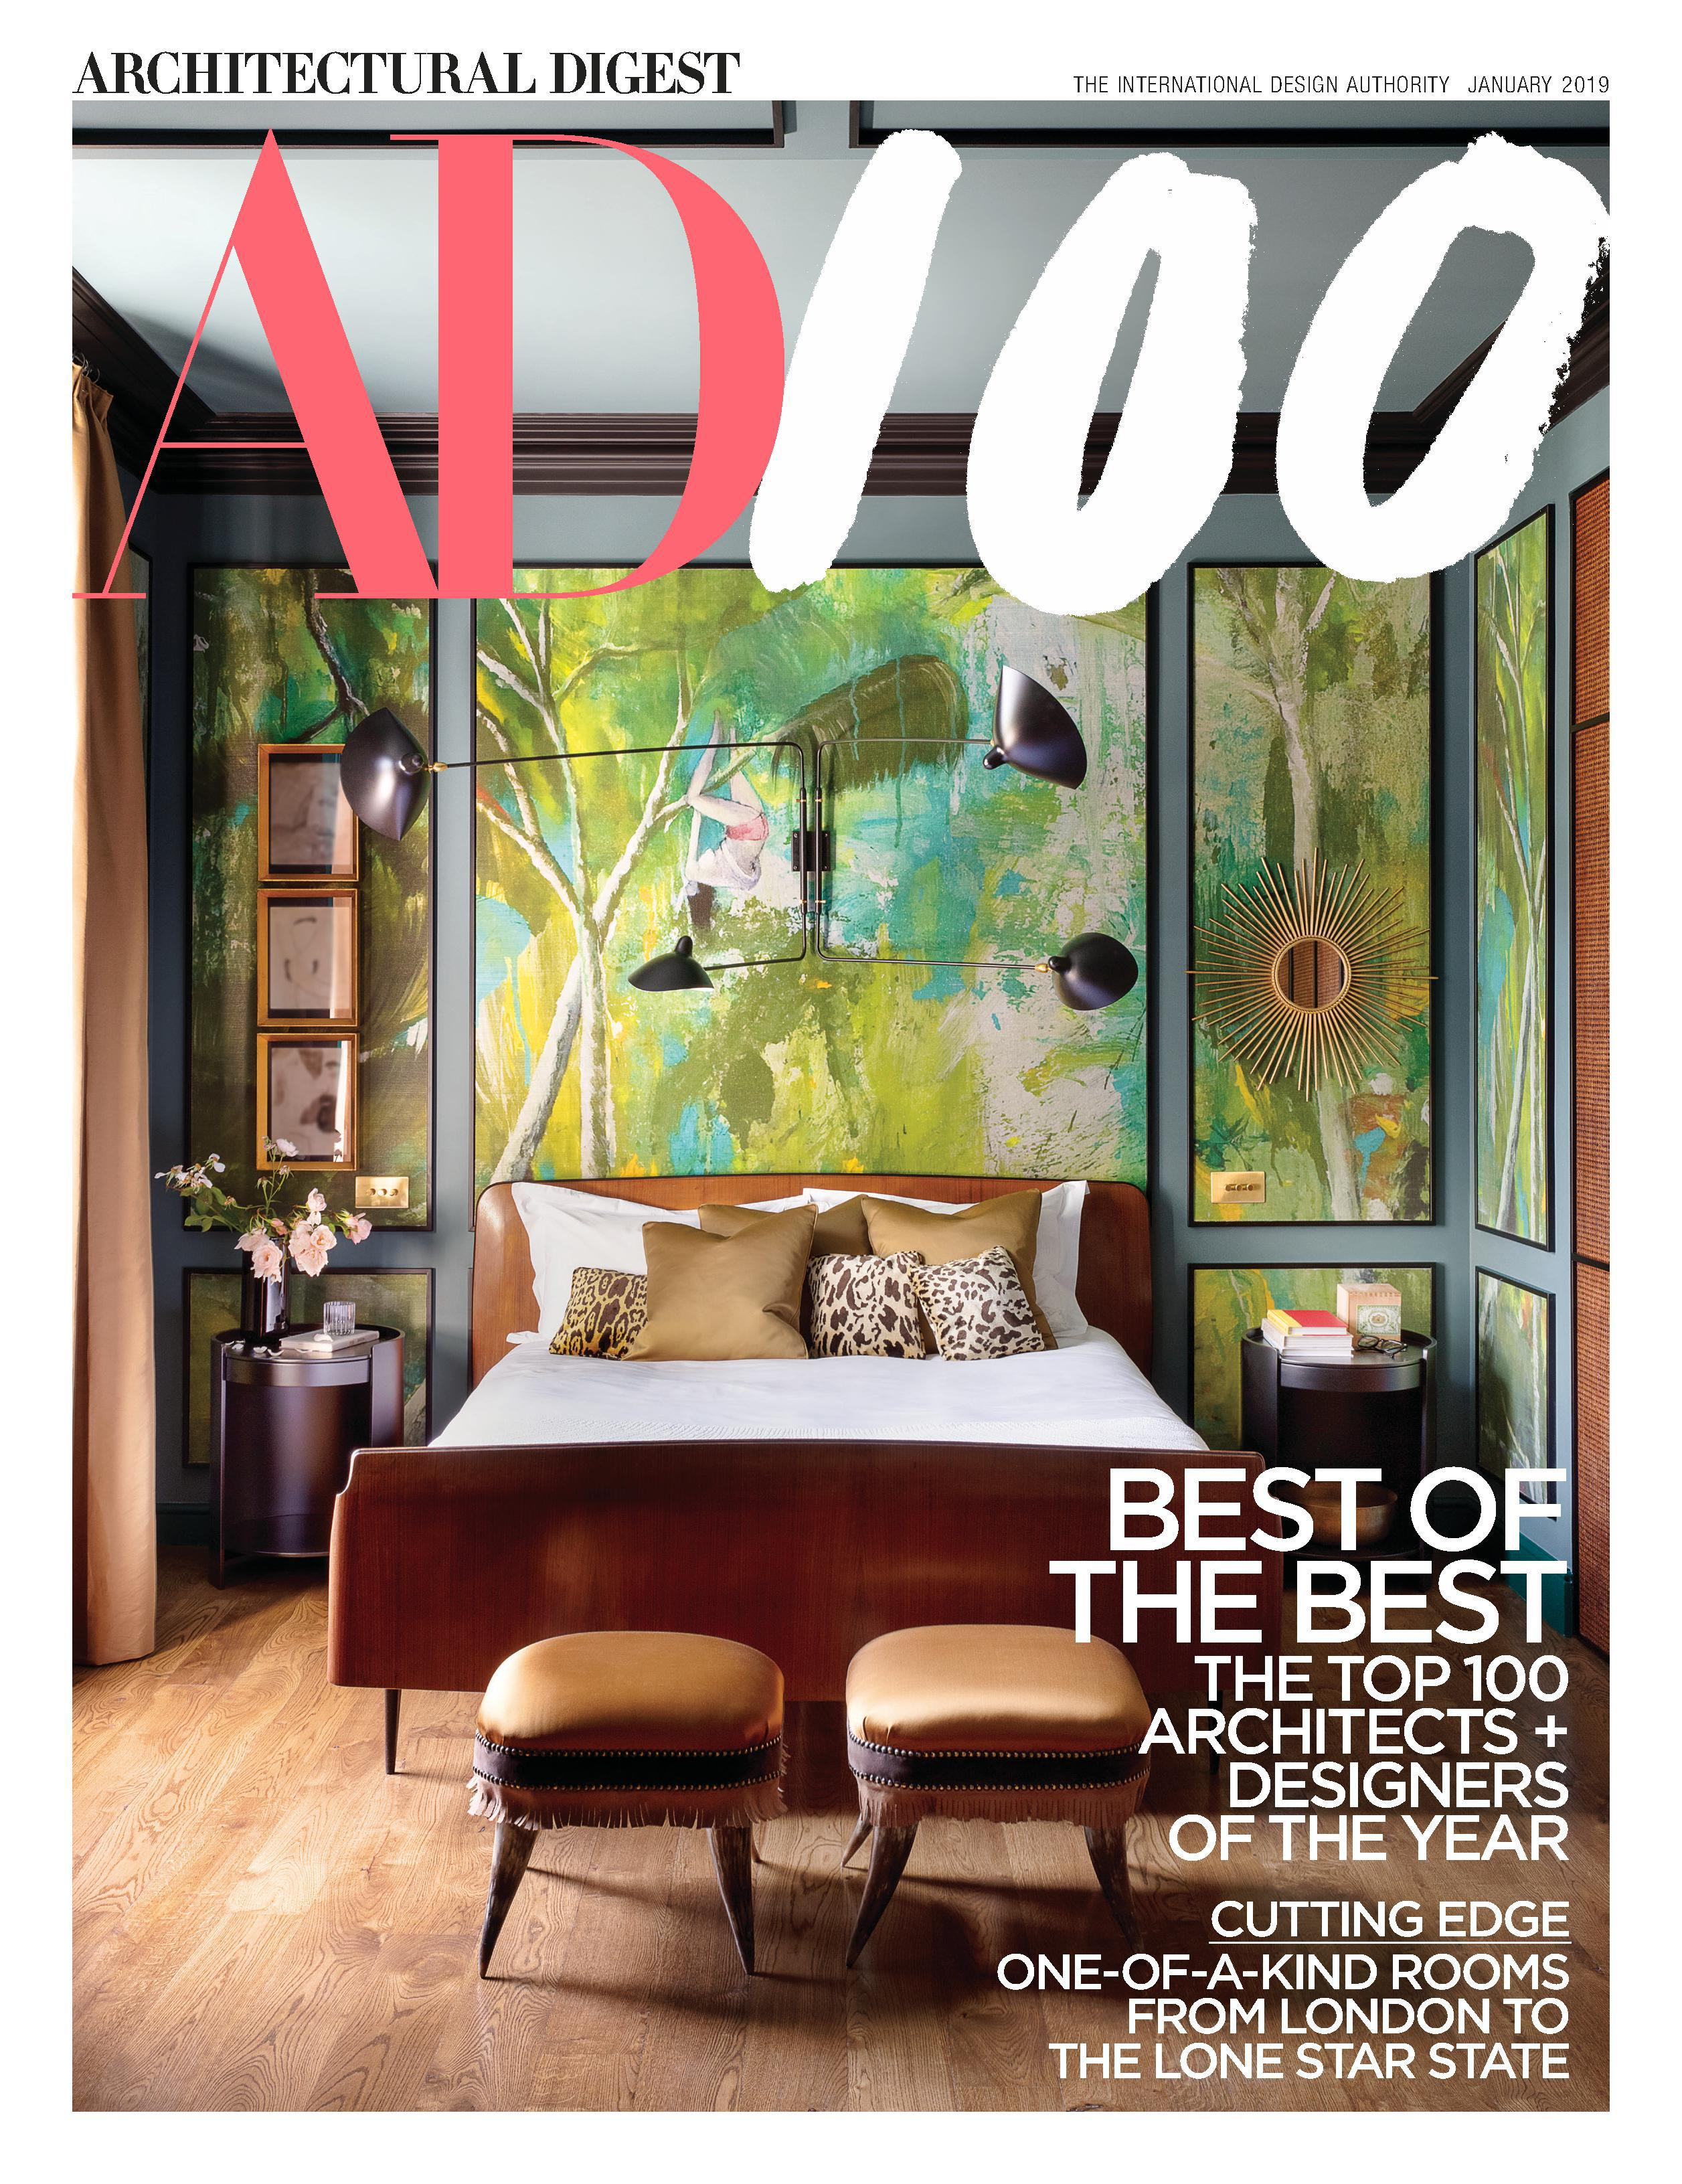 top interior design firms top 100 interior design firms in india The 2019 AD100. Truly honored to be included in todayu0027s top talent in design  and architecture